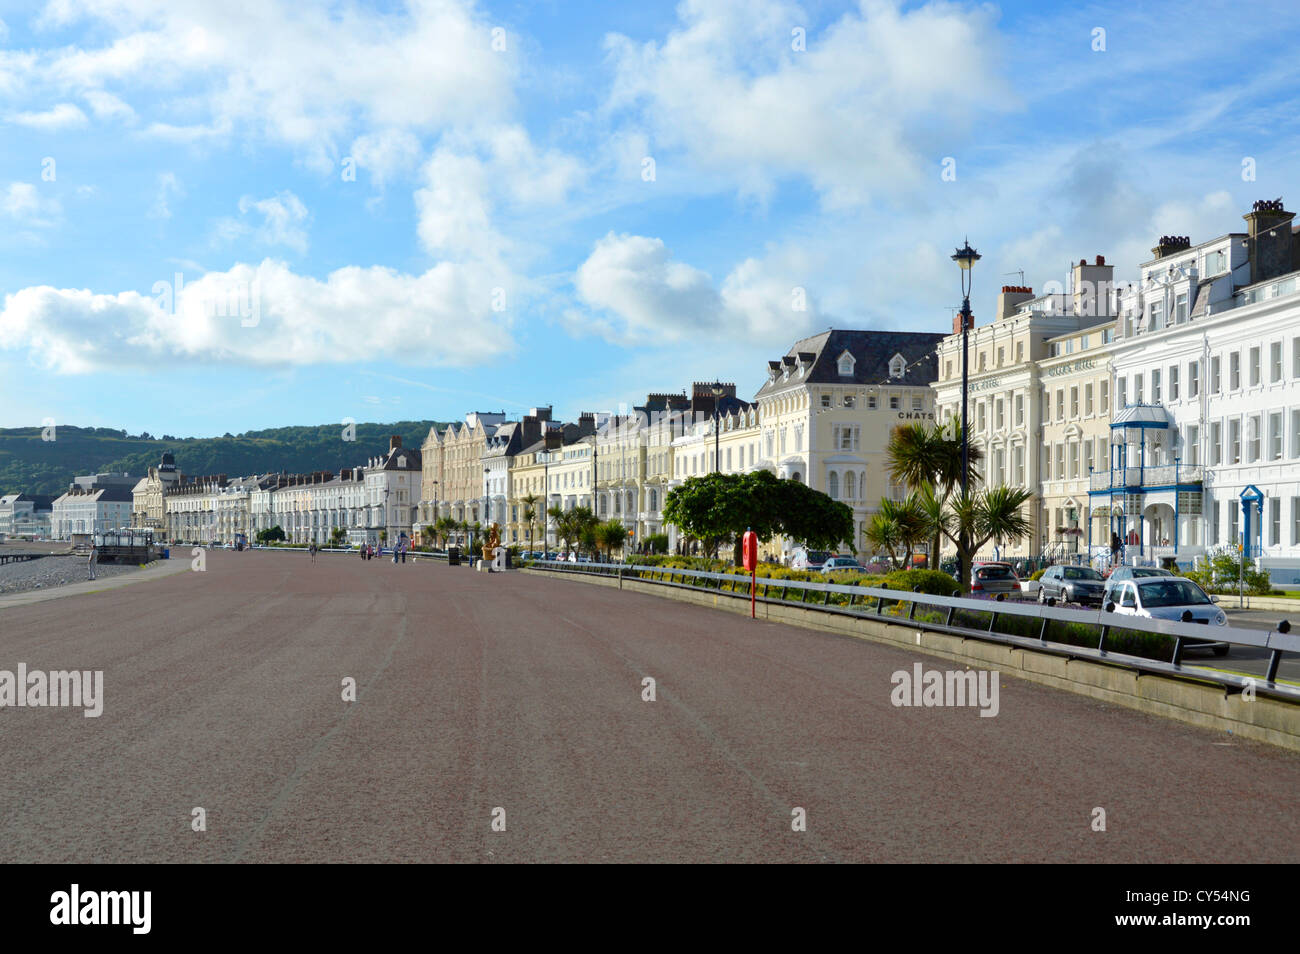 Llandudno the broad sweep of Llandudno Promenade and seafront hotels early morning summertime Llandudno Conwy Clwyd - Stock Image